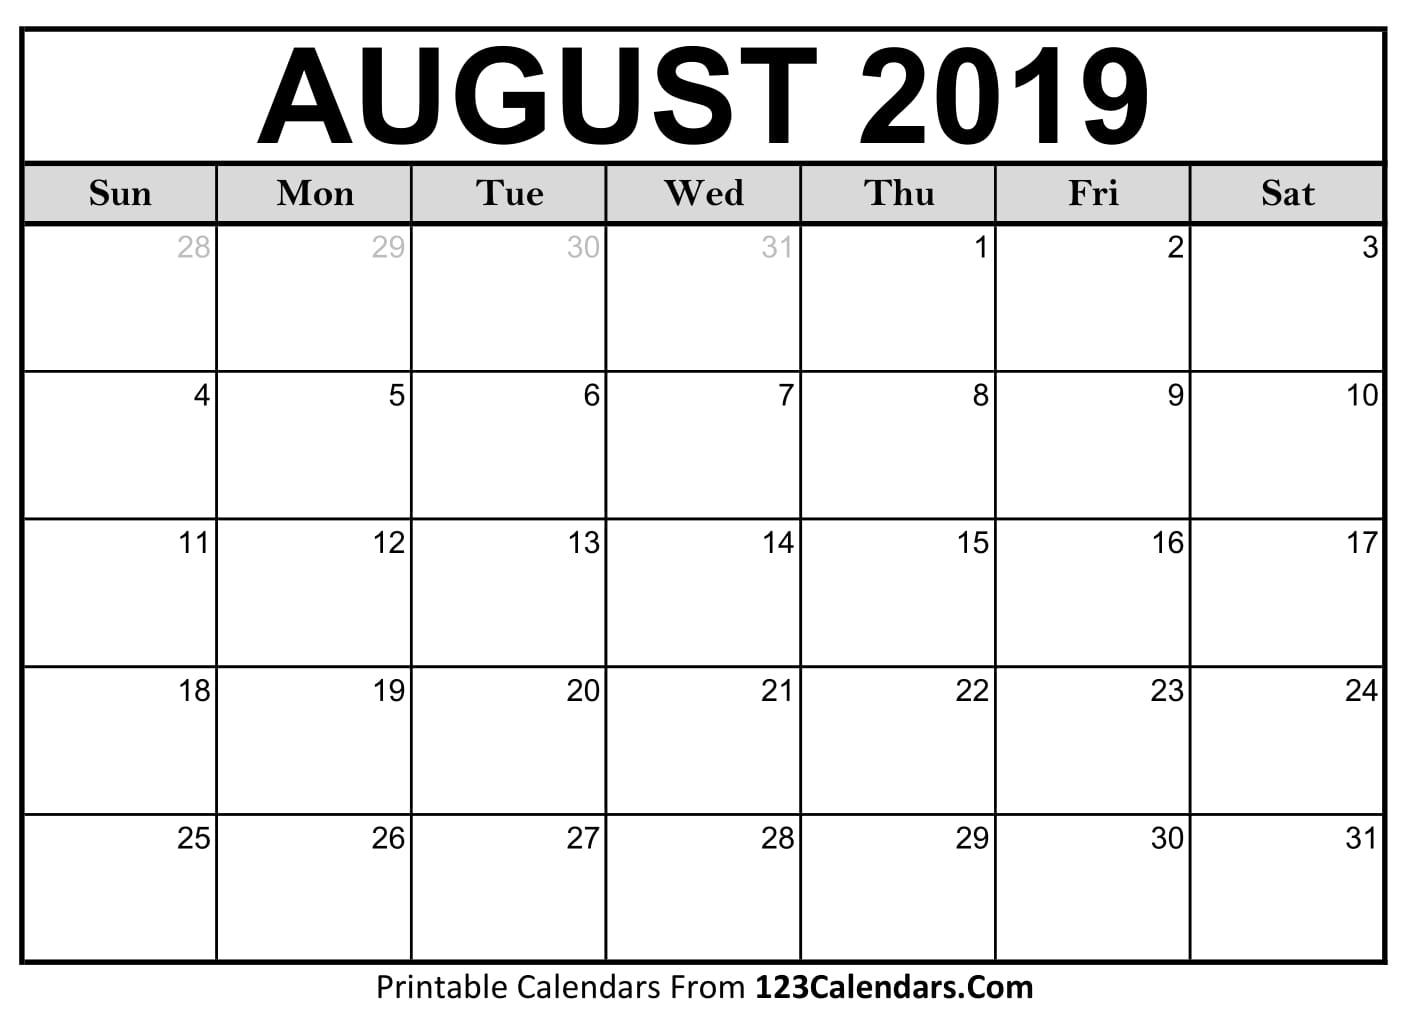 Blank August 2019 Calendar - Easily Printable - 123Calendars